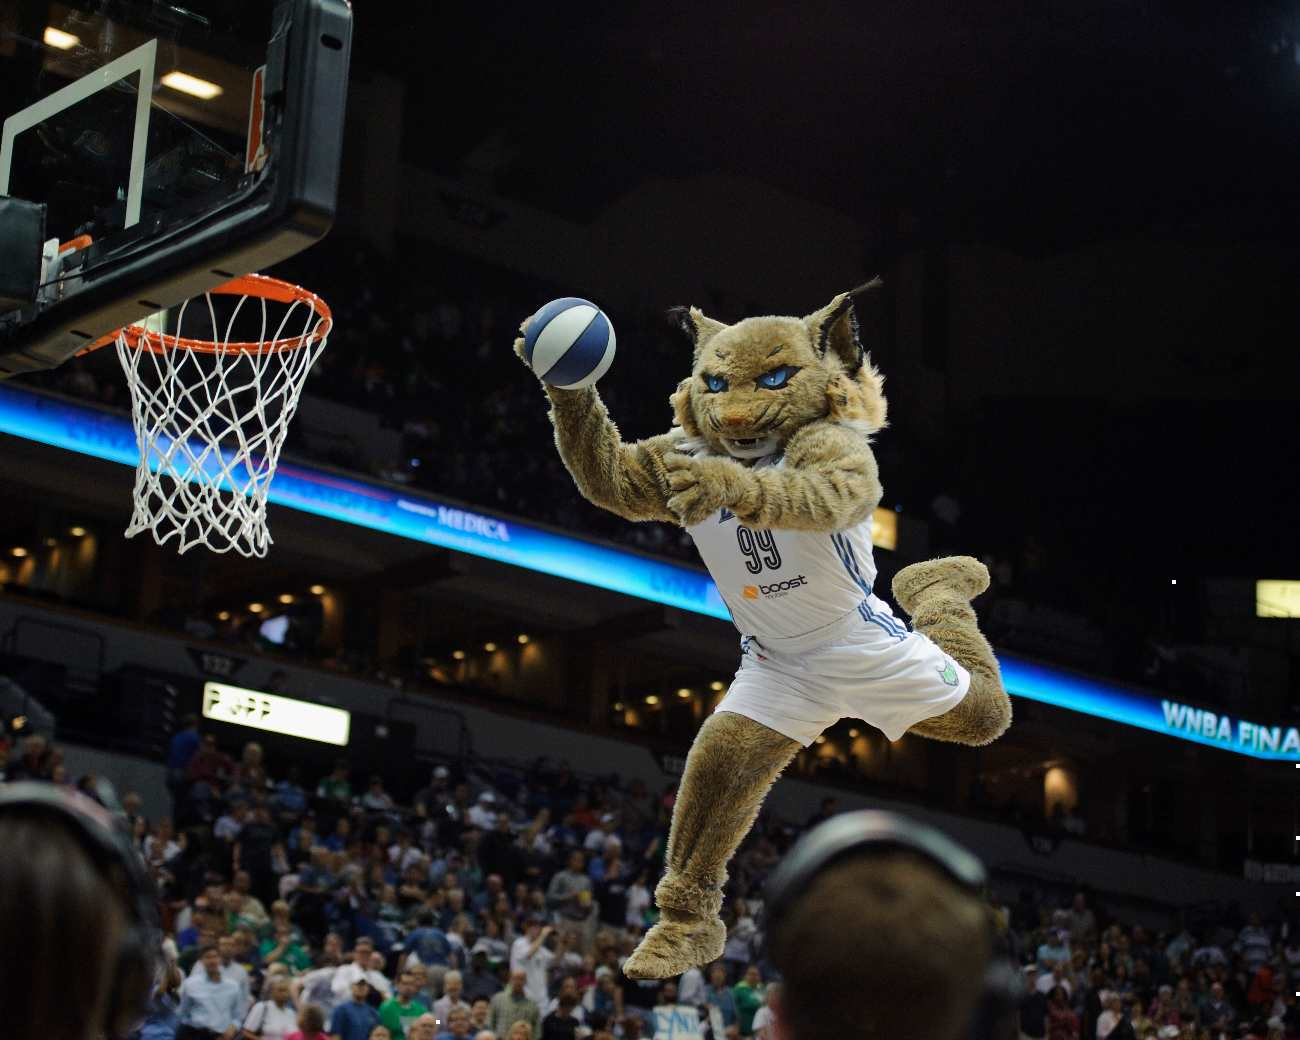 MINNEAPOLIS, MN - OCTOBER 8: Prowl, mascot for the Minnesota Lynx performs during Game Two of the 2013 WNBA Finals between the Minnesota Lynx and the Atlanta Dream on October 8, 2013 at Target Center in Minneapolis, Minnesota. NOTE TO USER: User expressly acknowledges and agrees that, by downloading and or using this Photograph, user is consenting to the terms and conditions of the Getty Images License Agreement. (Photo by Hannah Foslien/Getty Images)